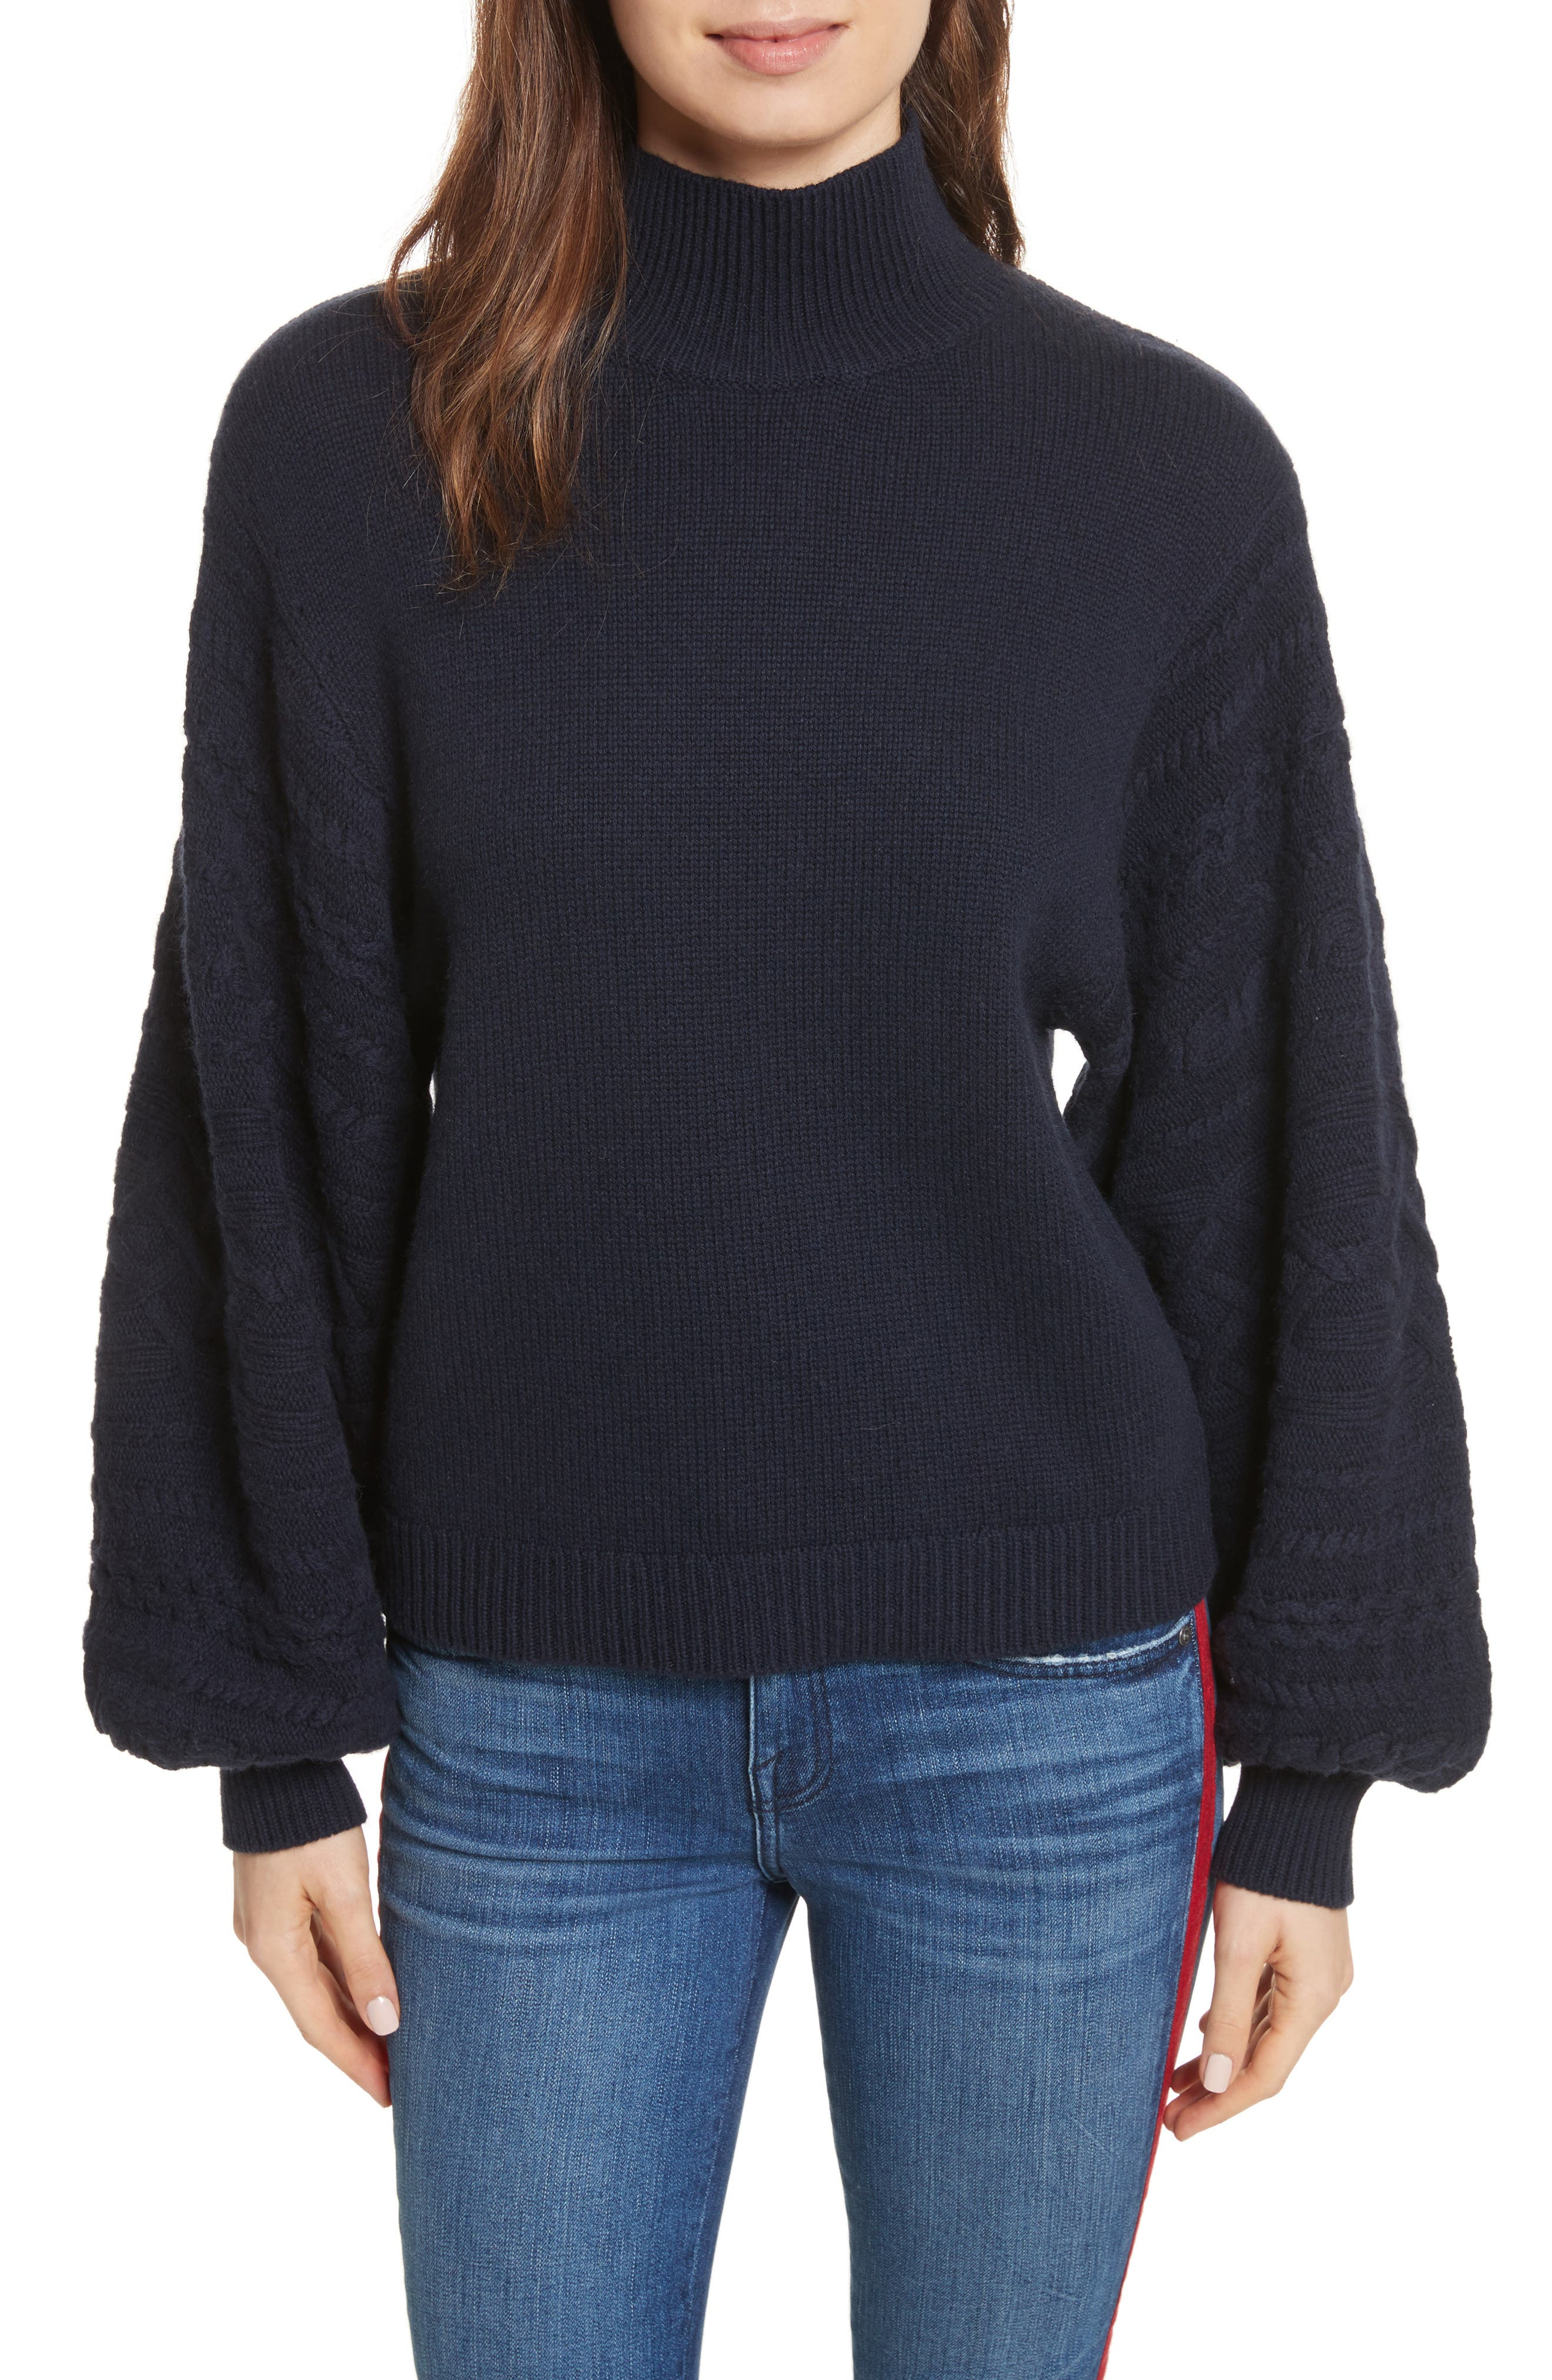 Alternate Image 1 Selected - Joie Lathen Mock Neck Sweater